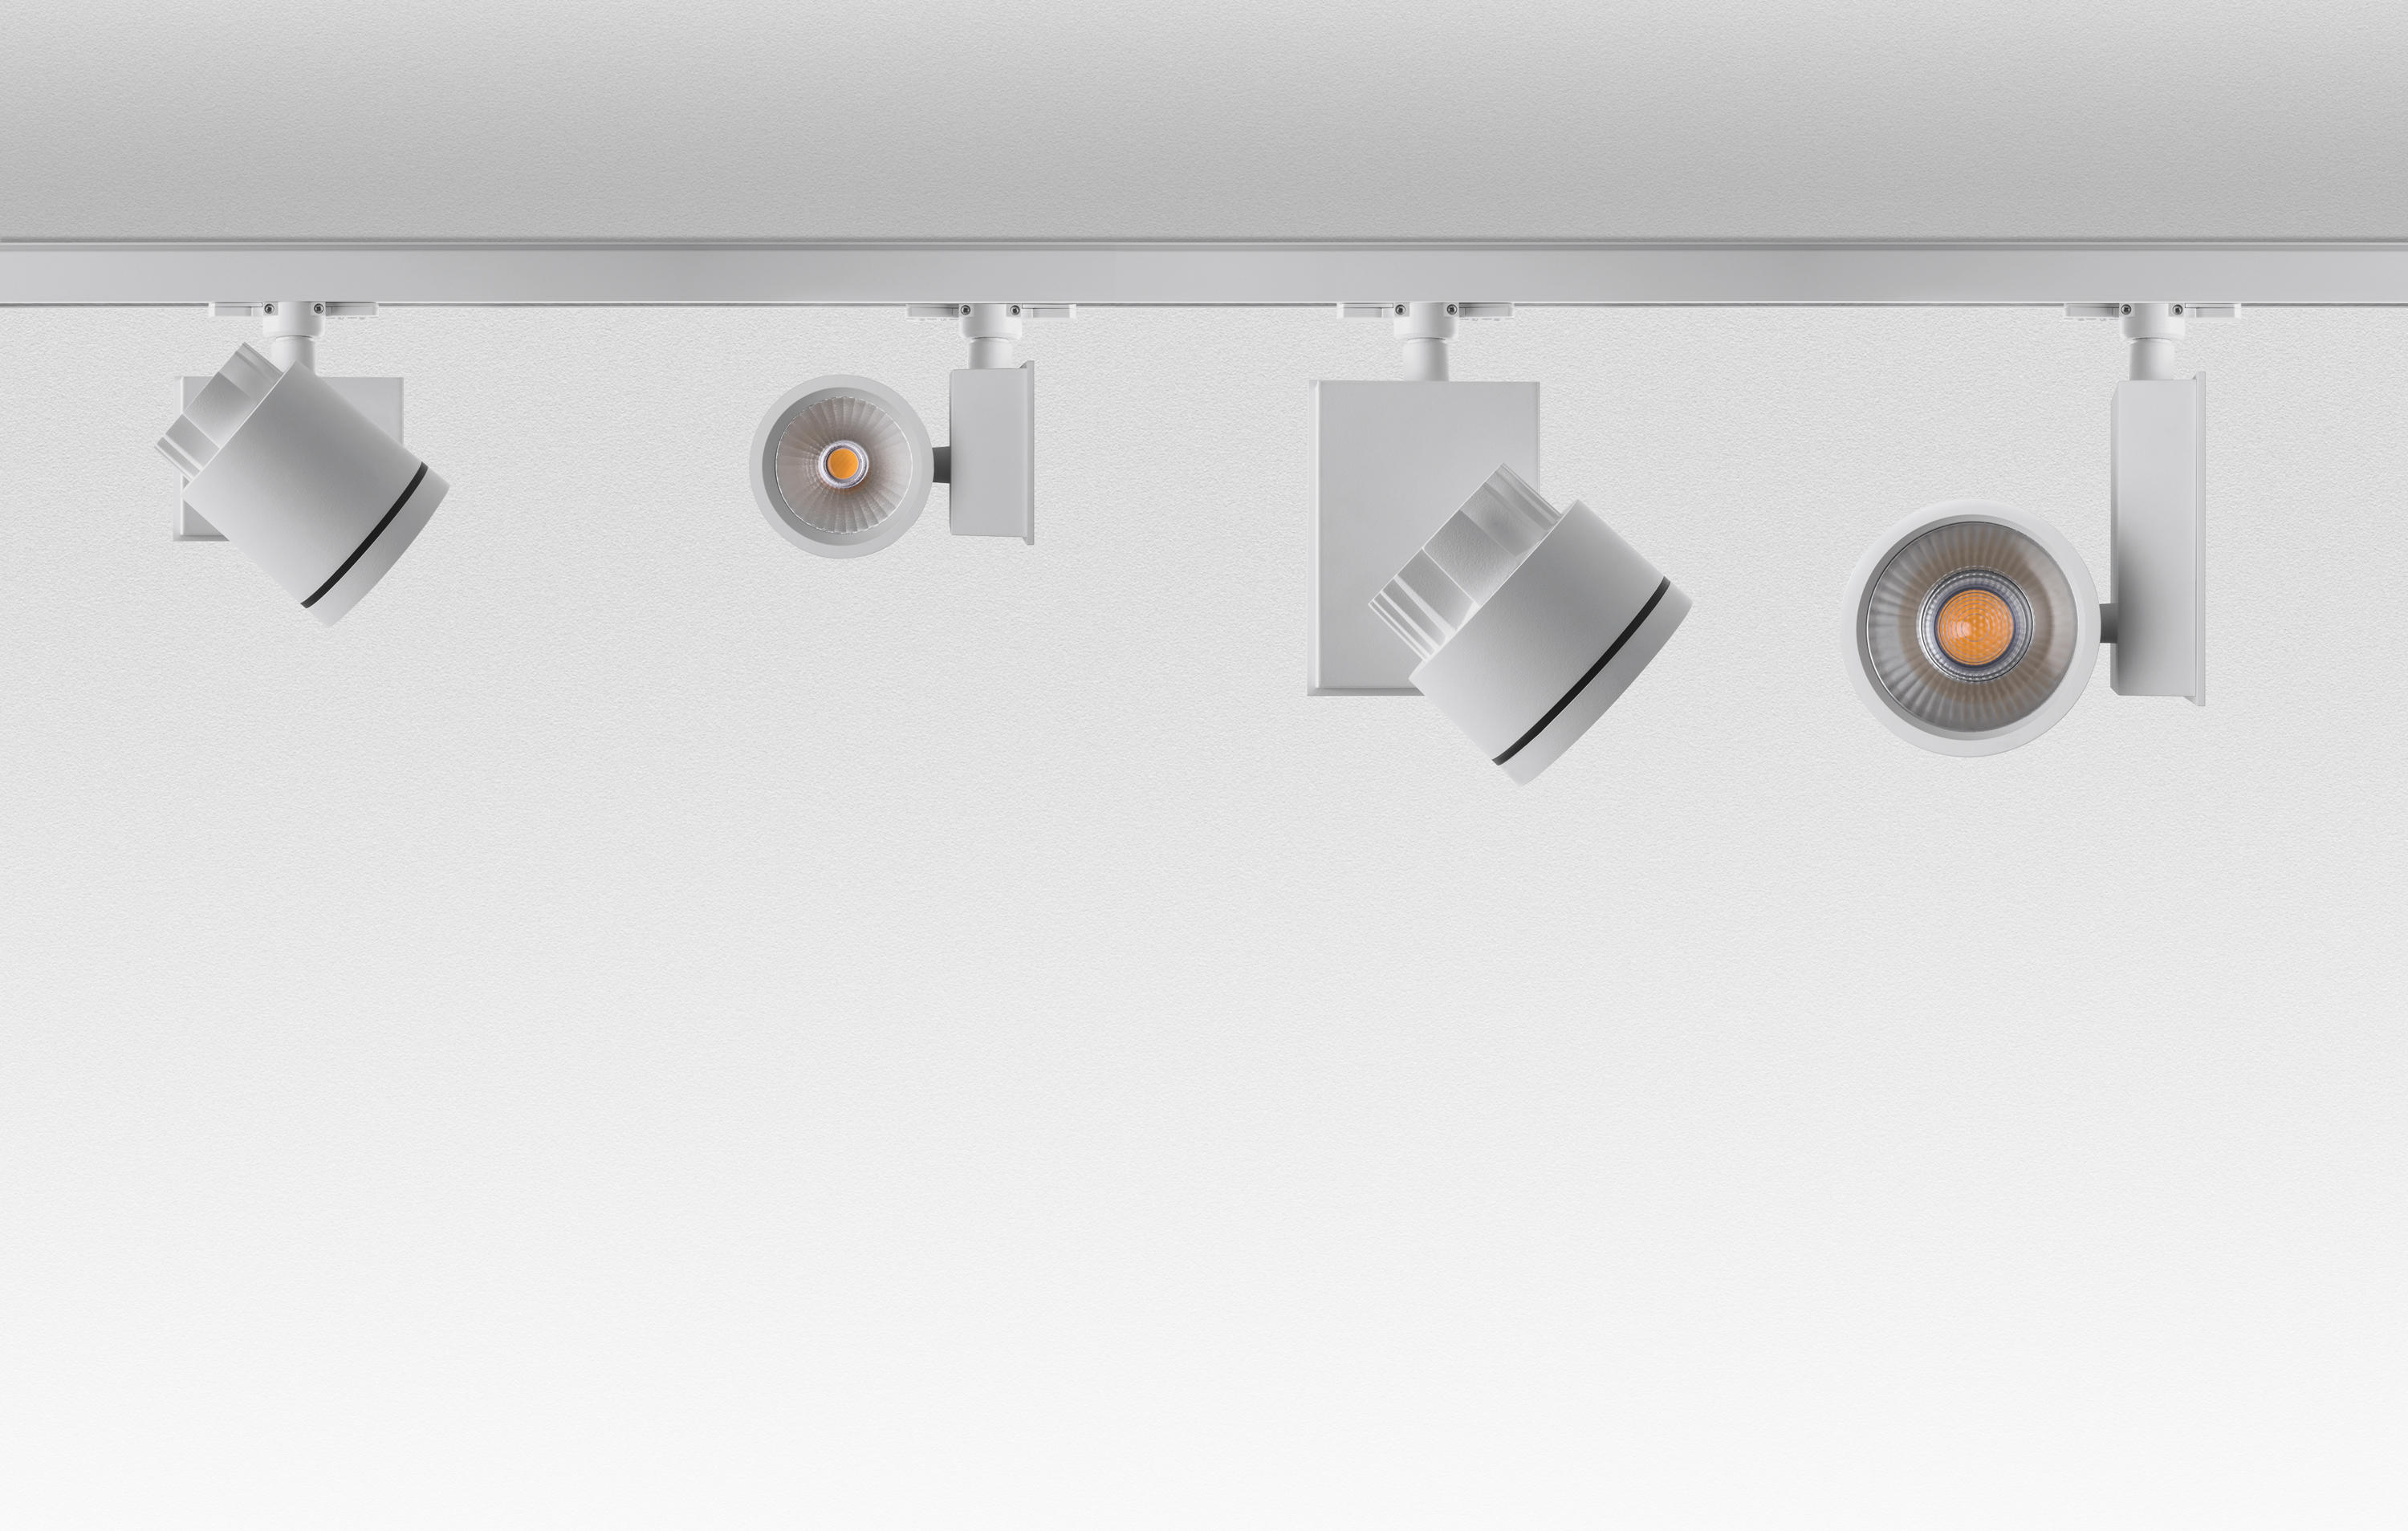 Picto 70 track ceiling mounted spotlights from artemide picto 70 track by artemide architectural picto 70 track by artemide architectural aloadofball Image collections